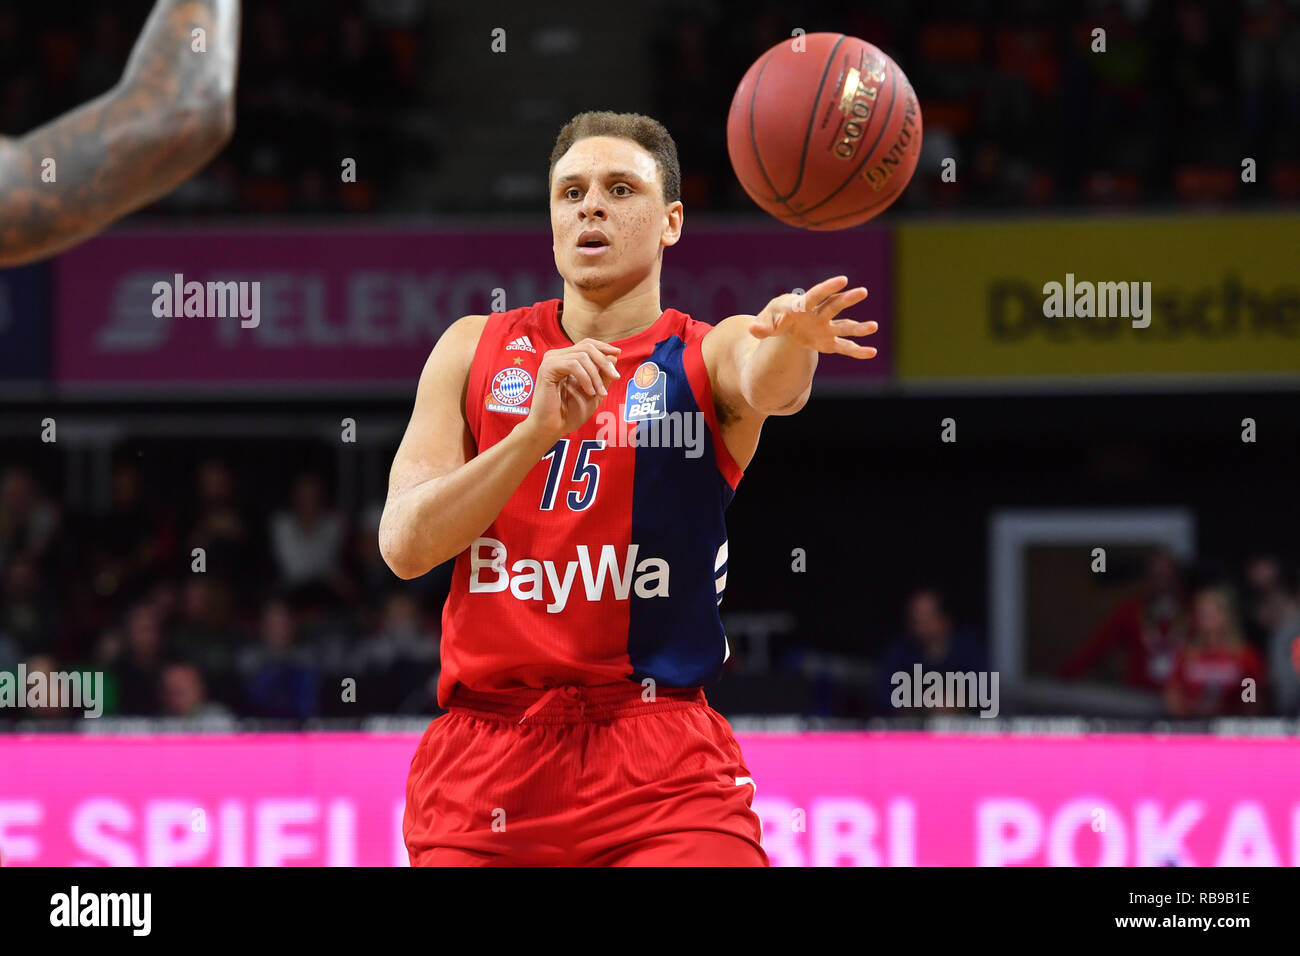 Robin AMAIZE (FCB), action, single image, single cut motive, half figure, half figure. Basketball 1.Bundesliga/Bayern Munich-medi Bayreuth on 06/01/2019. © Sven Simon Photo Agency GmbH & Co. Press Photo KG # Prinzess-Luise-Str. 41 # 45479 M uelheim/Ruhr # Tel. 0208/9413250 # Fax. 0208/9413260 # GLS Bank # Bank Code 430 609 67 # Kto. 4030 025 100 # IBAN DE75 4306 0967 4030 0251 00 # BIC GENODEM1GLS # www.svensimon.net ## -video ## Basketball 1.Bundesliga/FC Bayern Munich-Telekom Baskets Bonn on 21.10.2018, AUDIDOM E. | usage worldwide - Stock Image